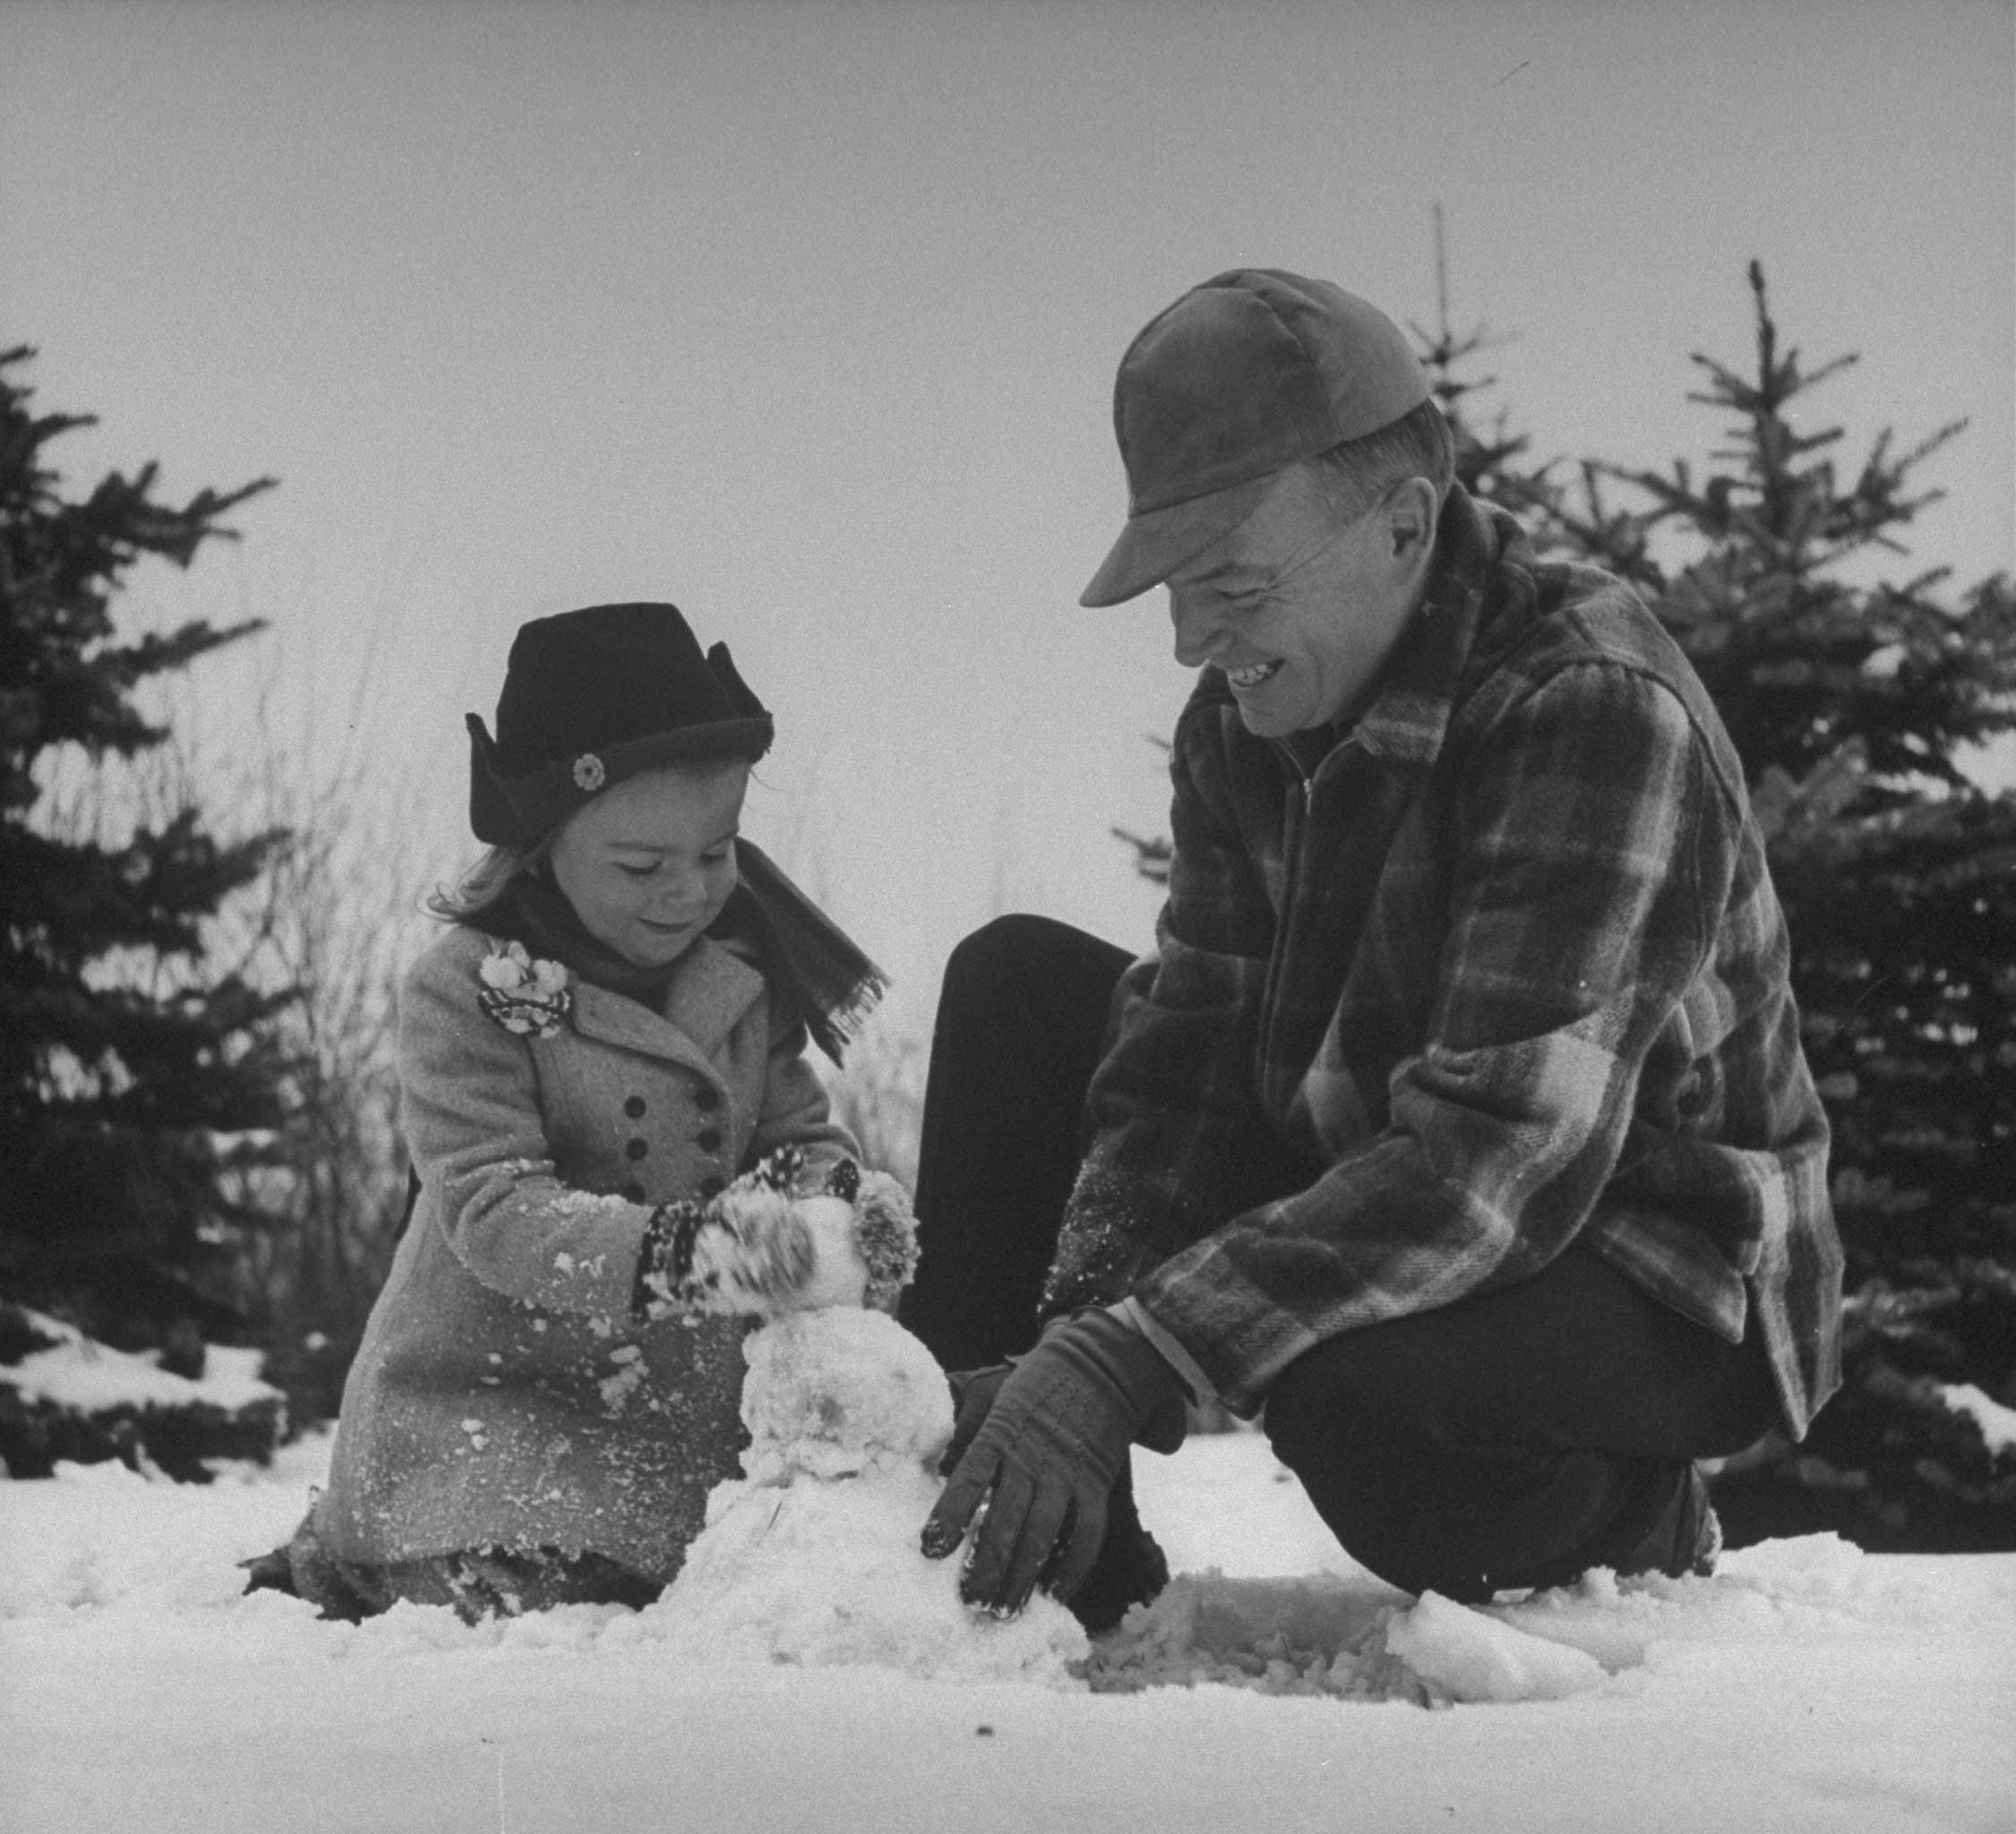 Harold E. Stassen (R) building a snowman with his daughter in 1945